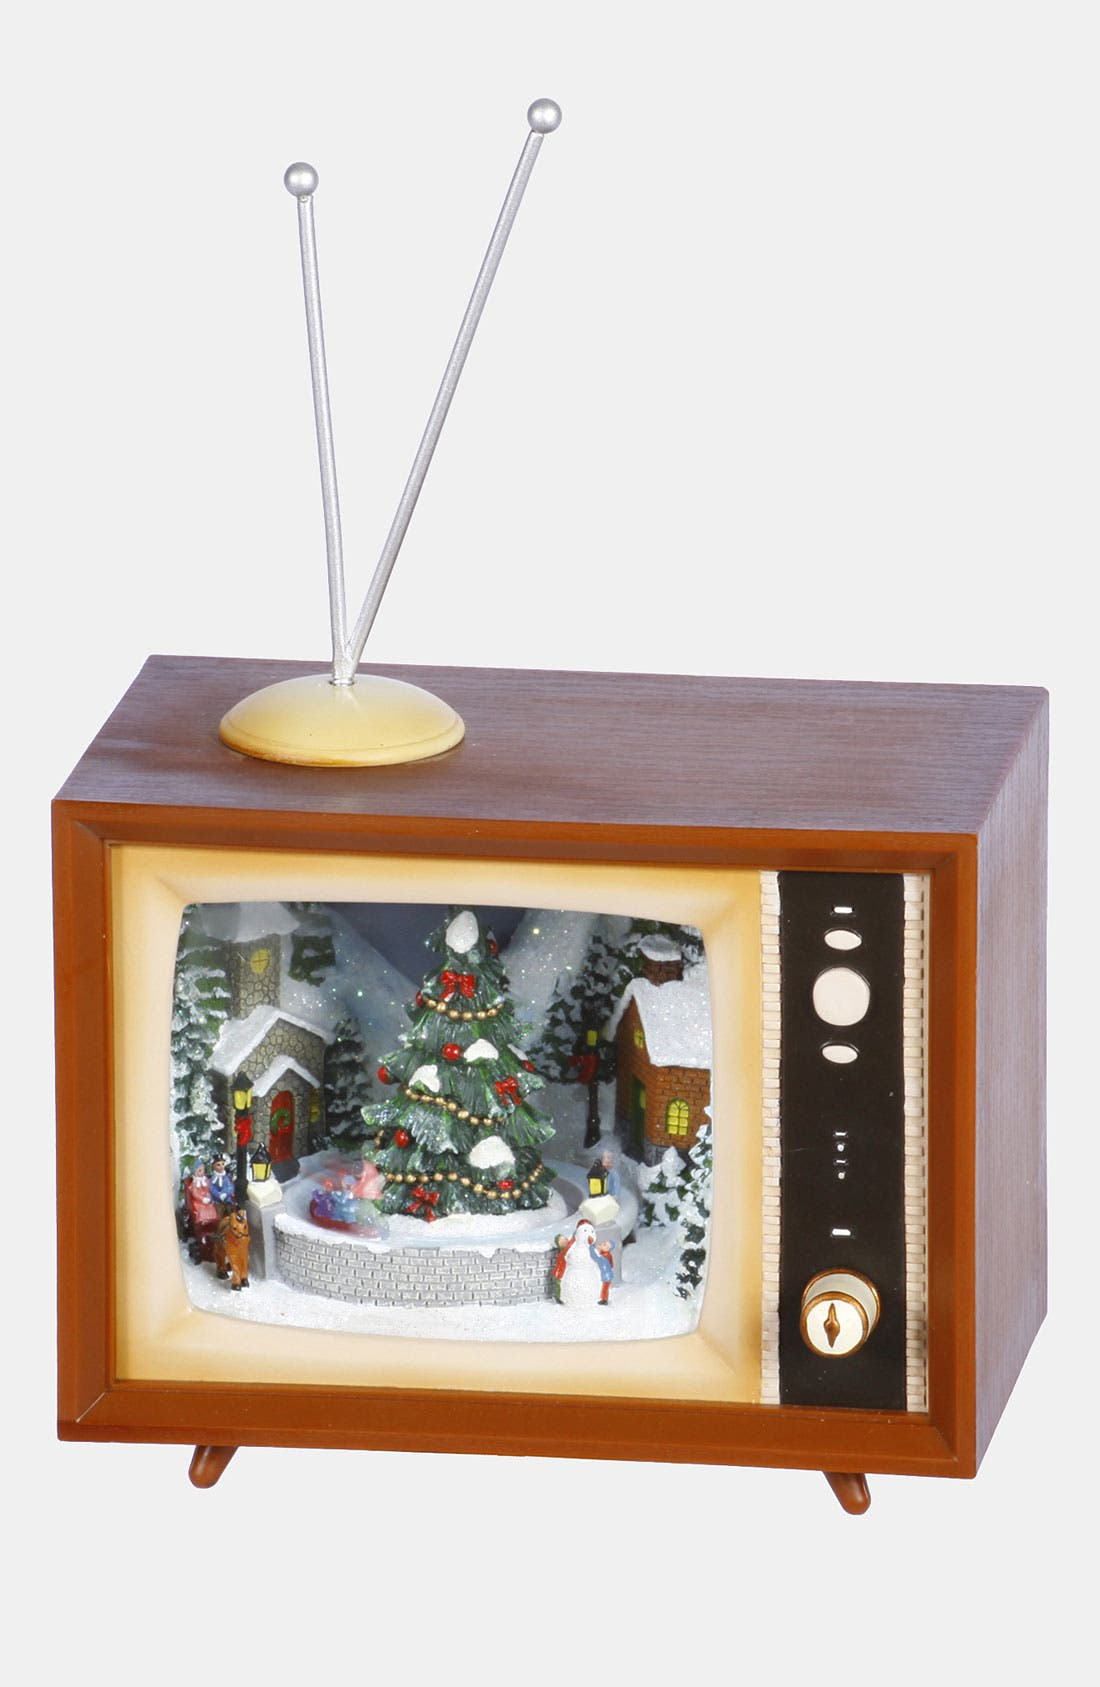 Main Image - Winward 'Mini TV - Square' Music Box